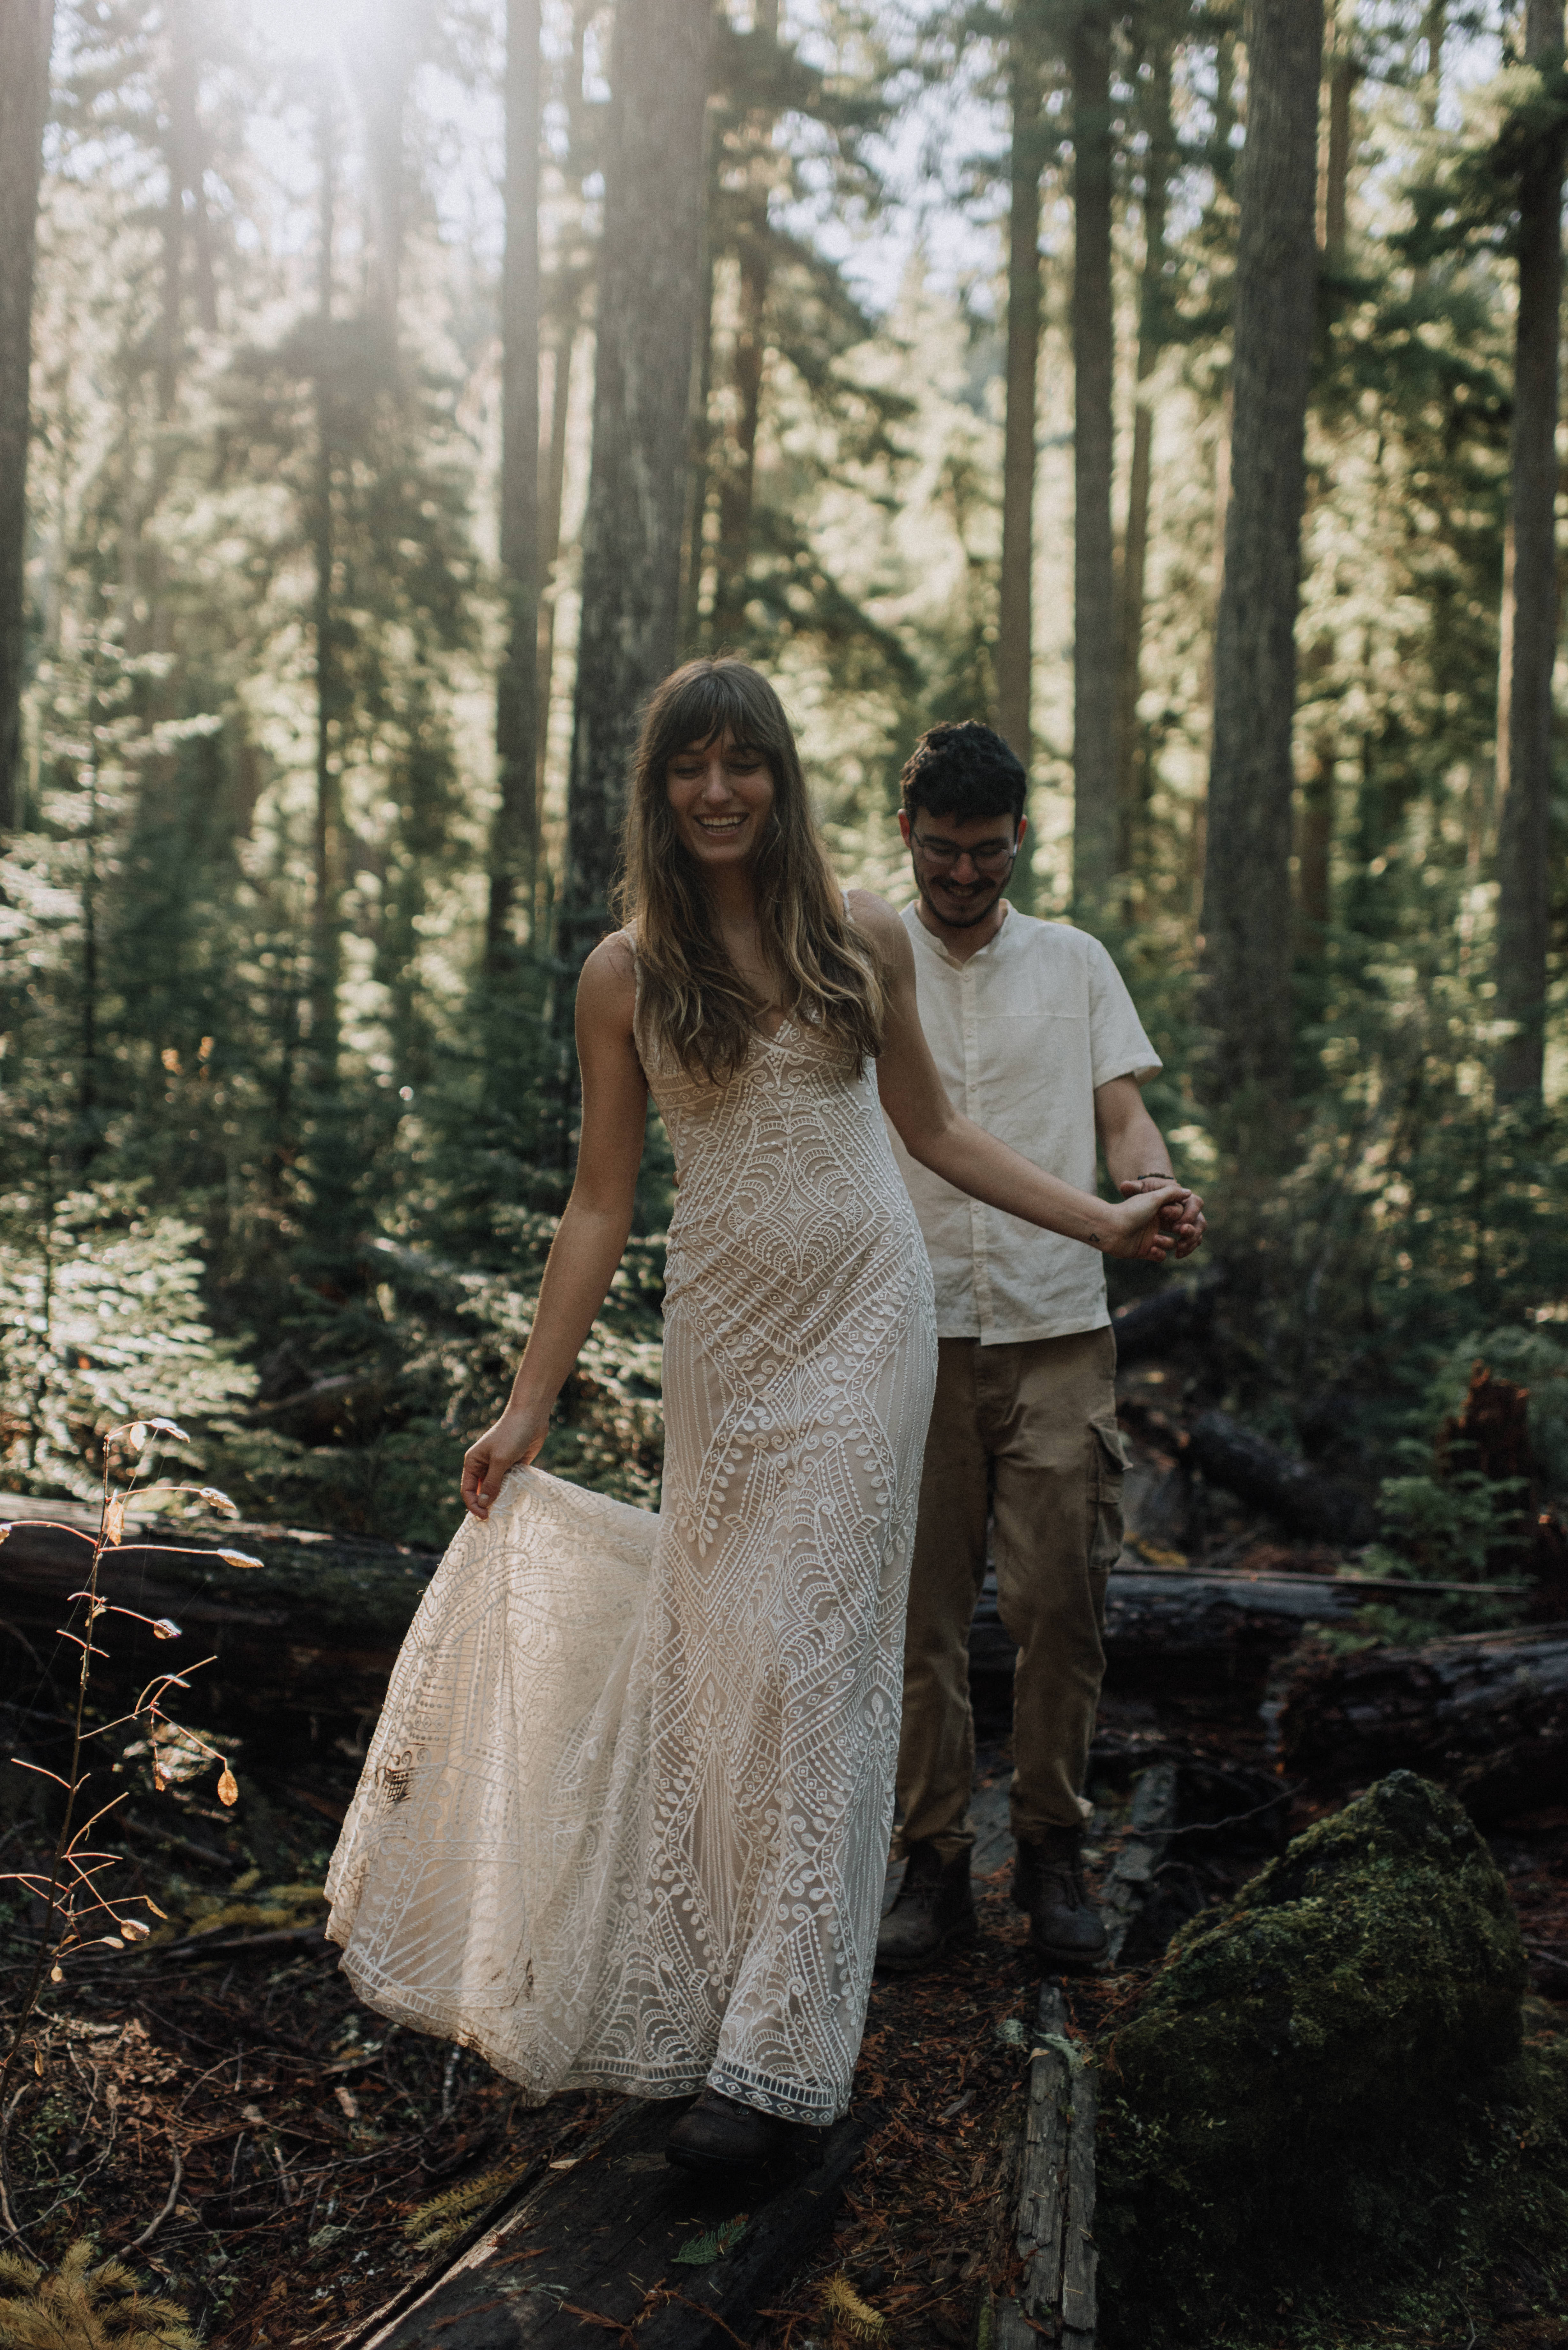 mckenzie river waterfall adventure elopement near eugene oregon by naomi levit